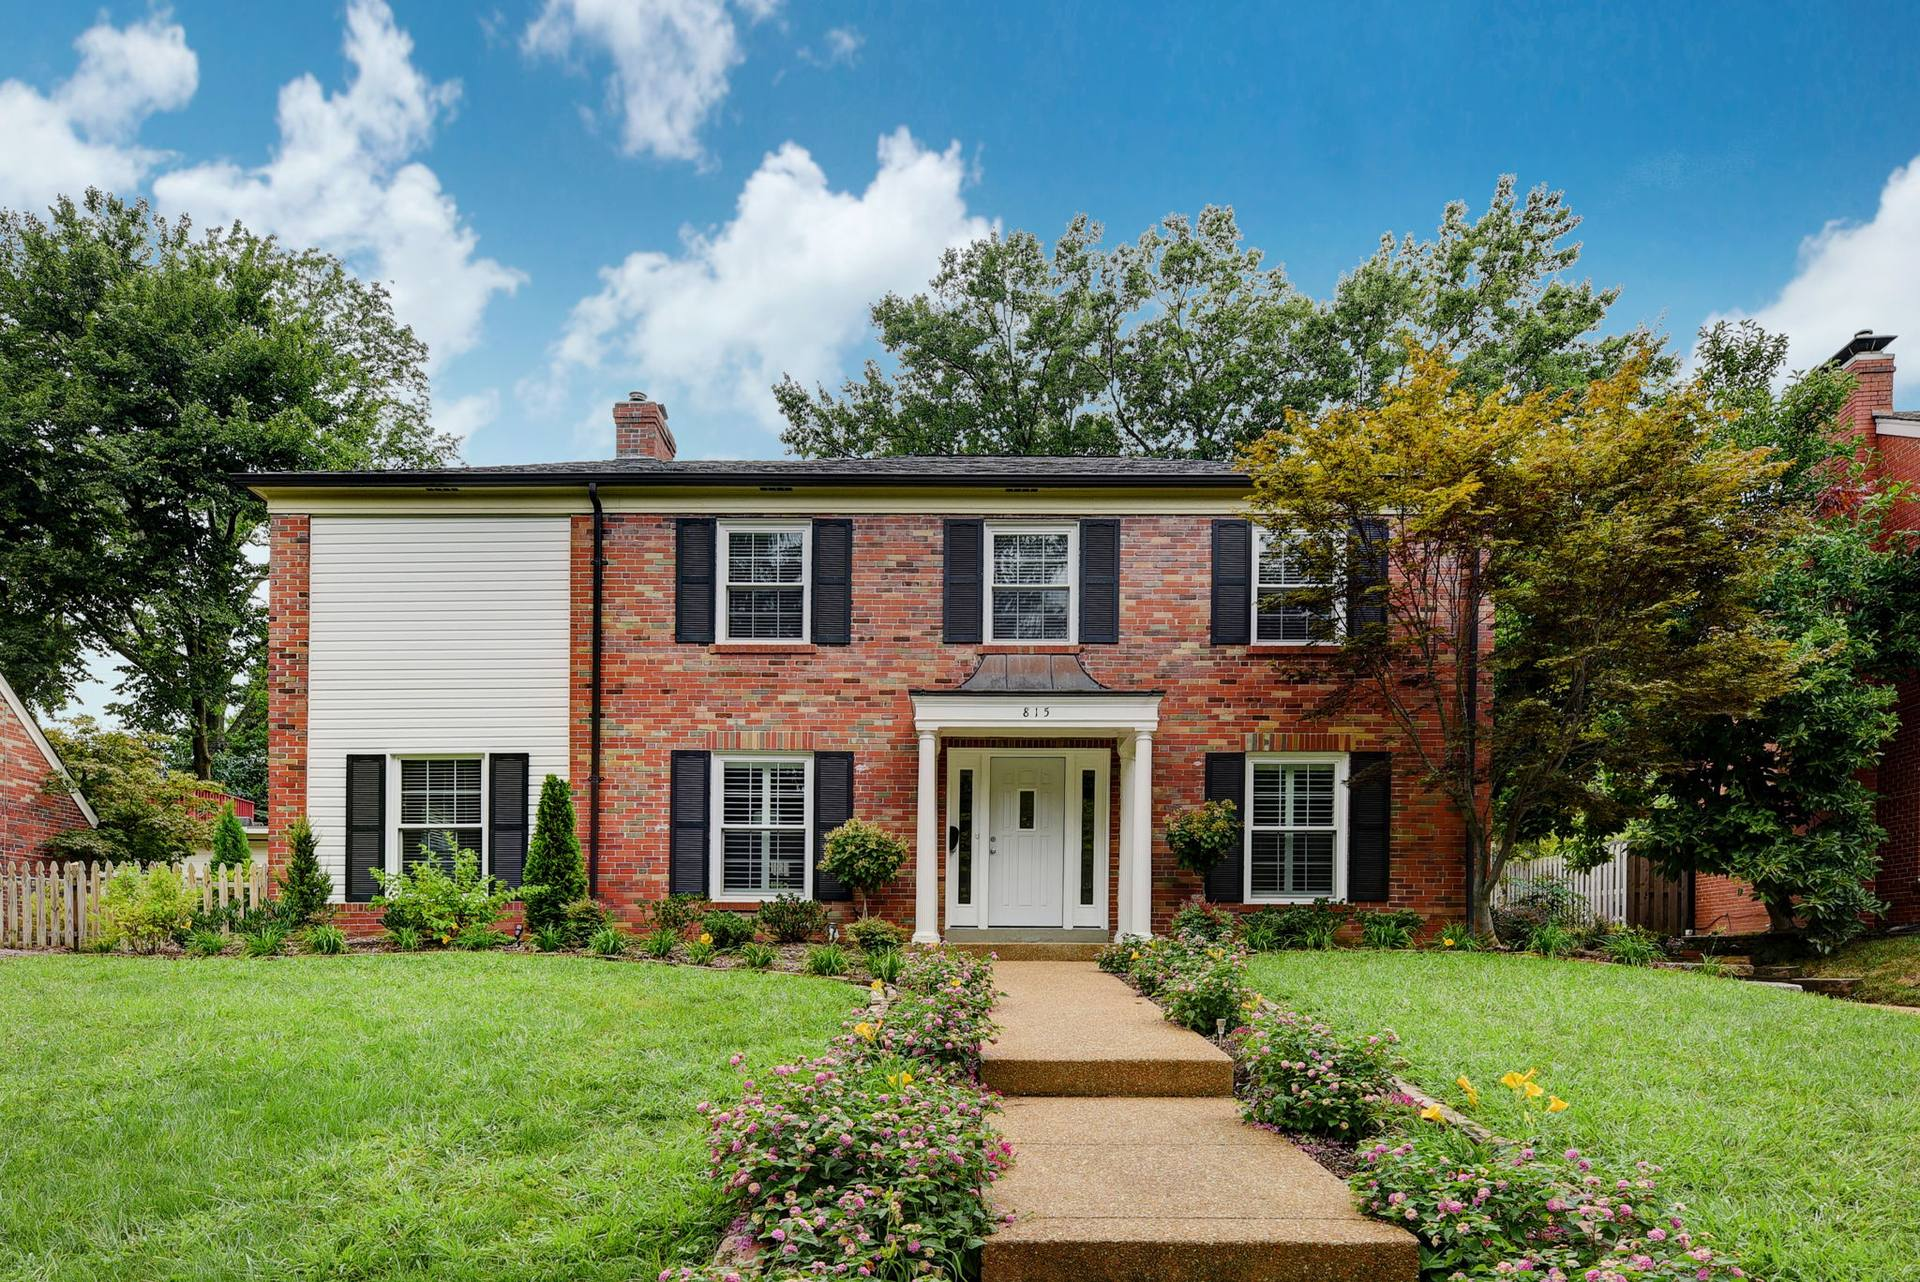 815 S Central Ave, Clayton, MO 63105, US